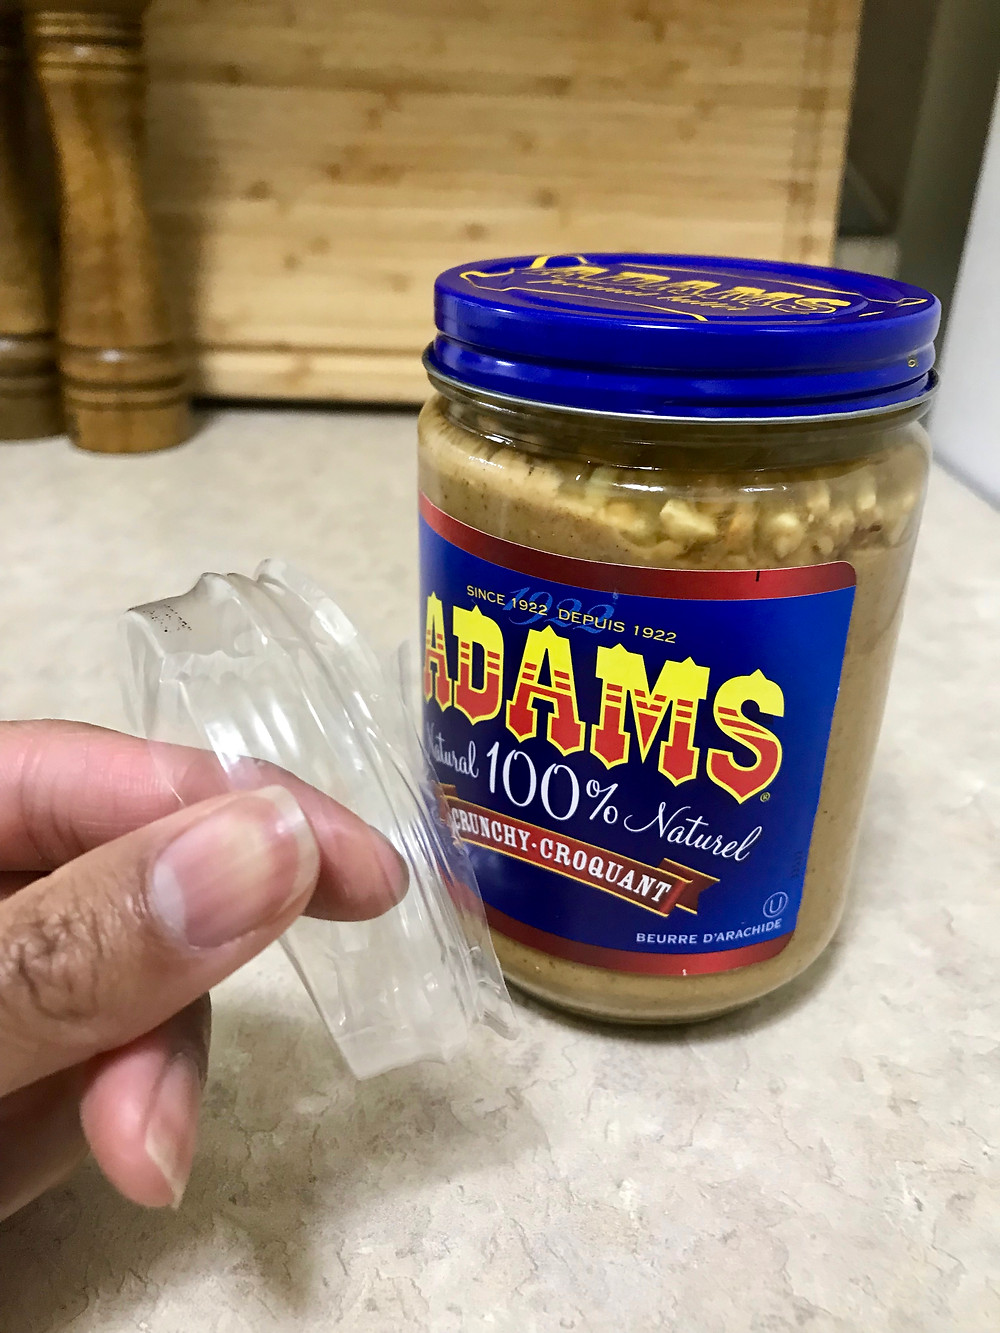 Why do glass jars still need plastic wrap?